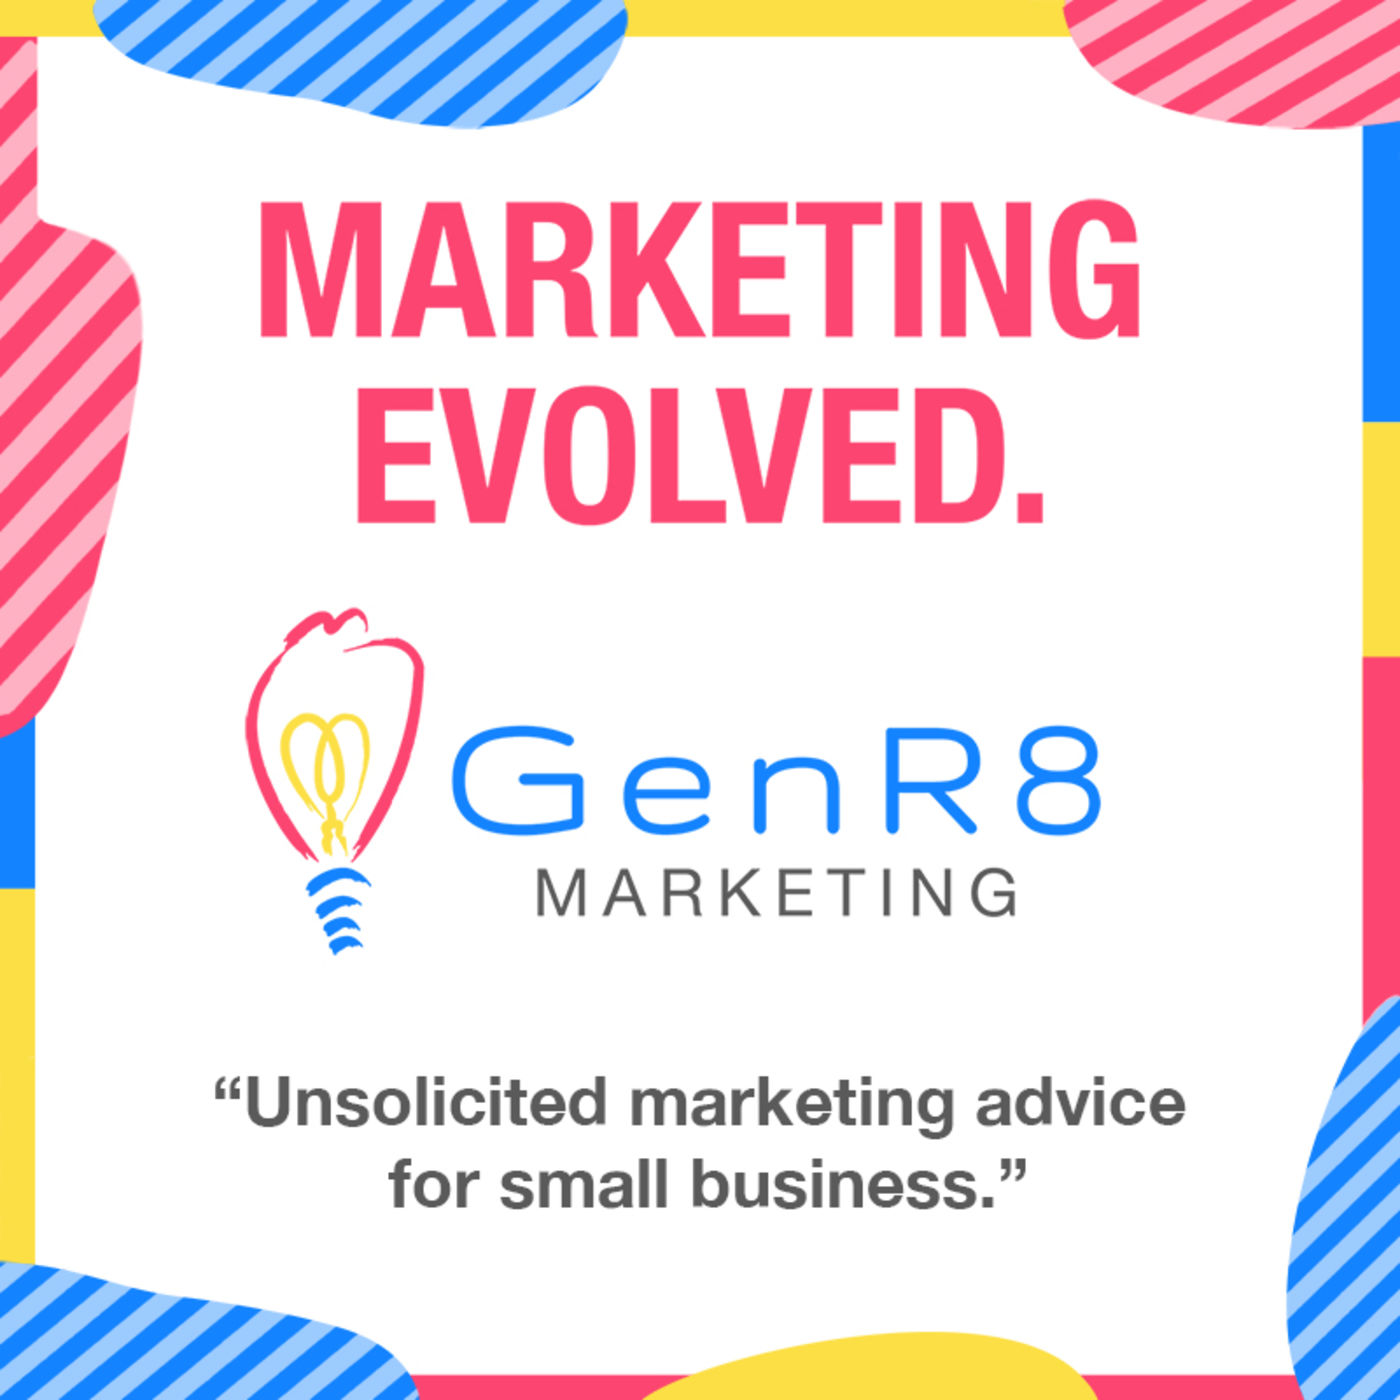 Episode 2: Marketing Evolved 2.19.19